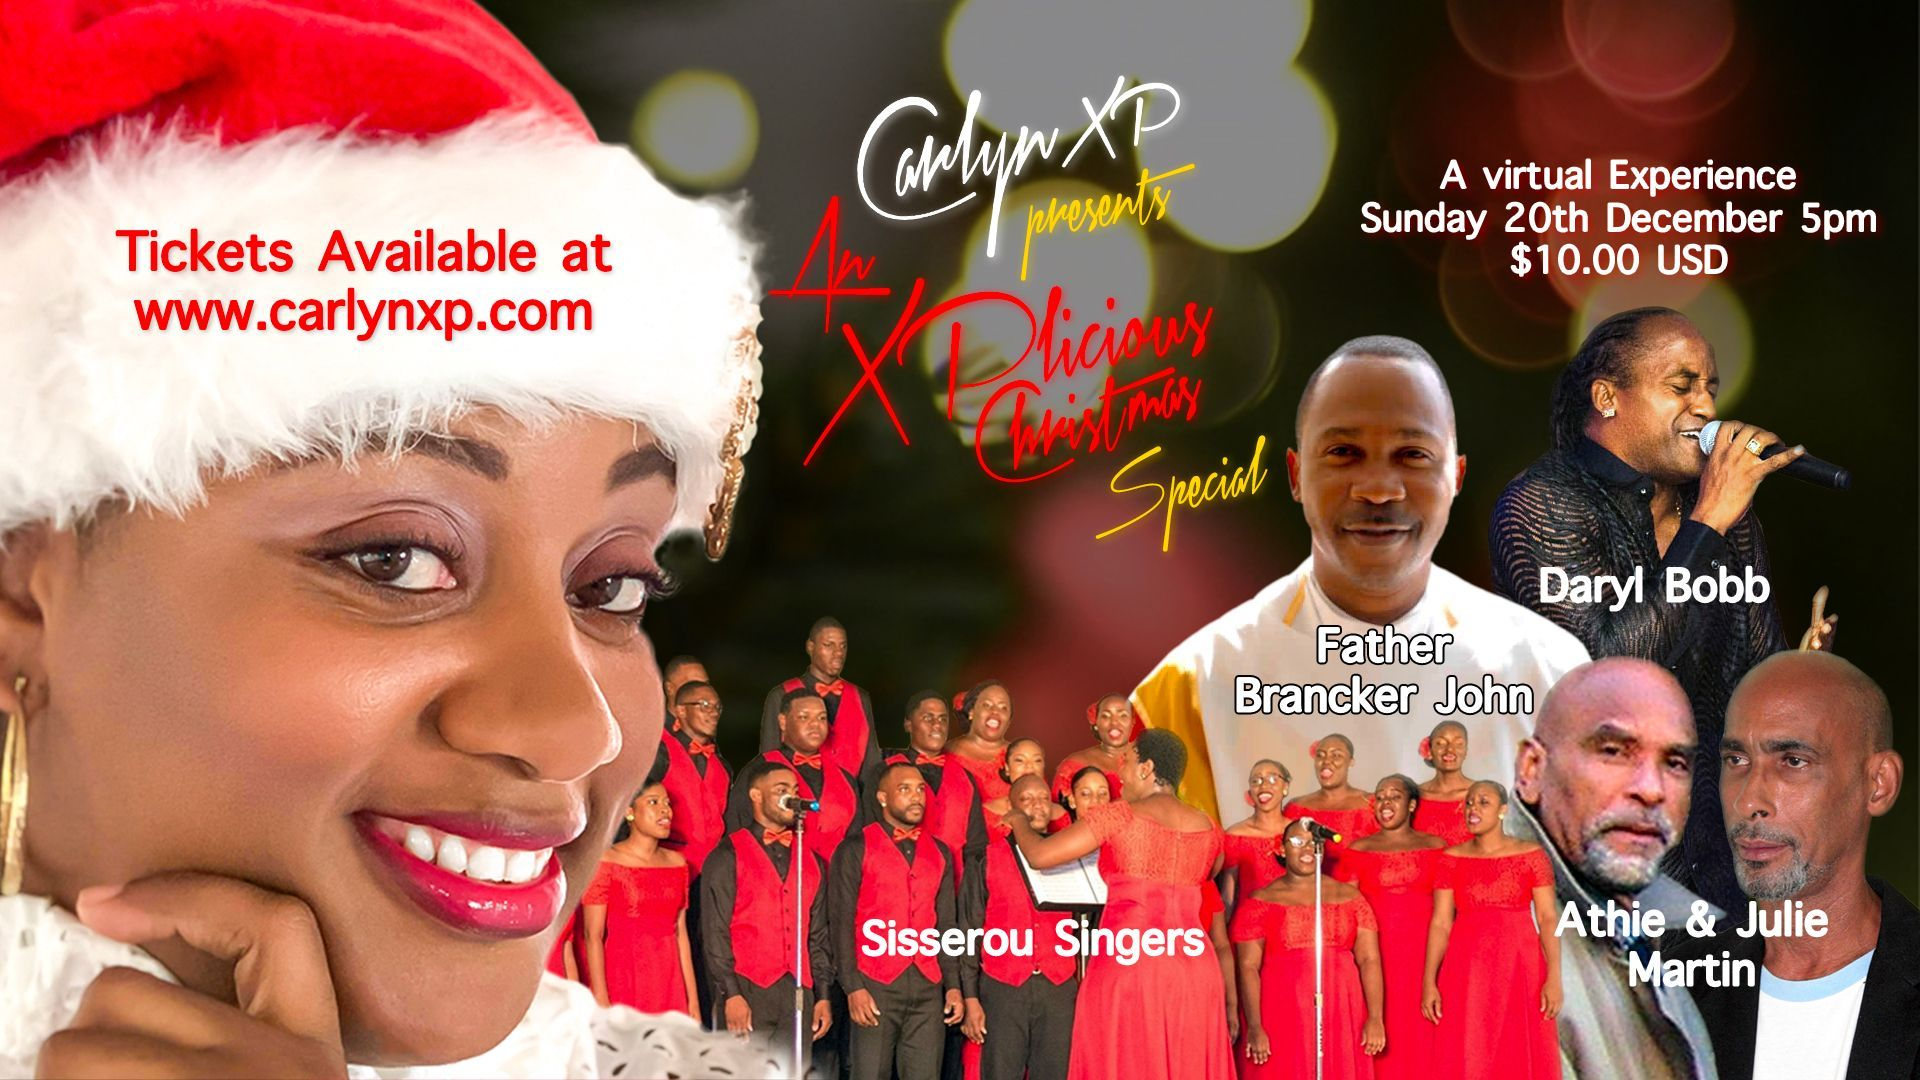 An XPlicious Christmas Special presented by Carlyn XP